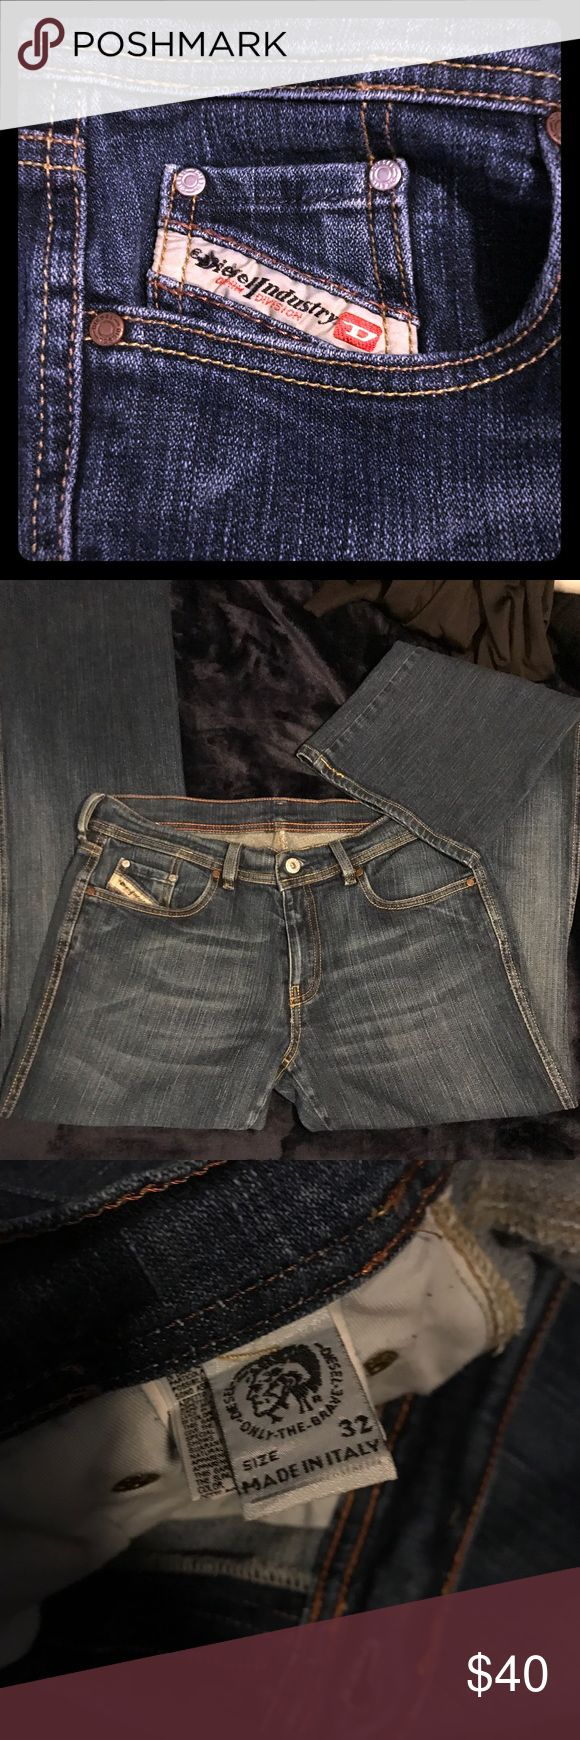 Ladies Diesel Jeans EUR Sz 32 Bought in Rome.  Made in Italy.  Slight bootcut.  98% cotton and 2% elastane give an ever-so-slight stretch without losing shape.  Sit at navel/waist level.  Worn once. Diesel Jeans Boot Cut